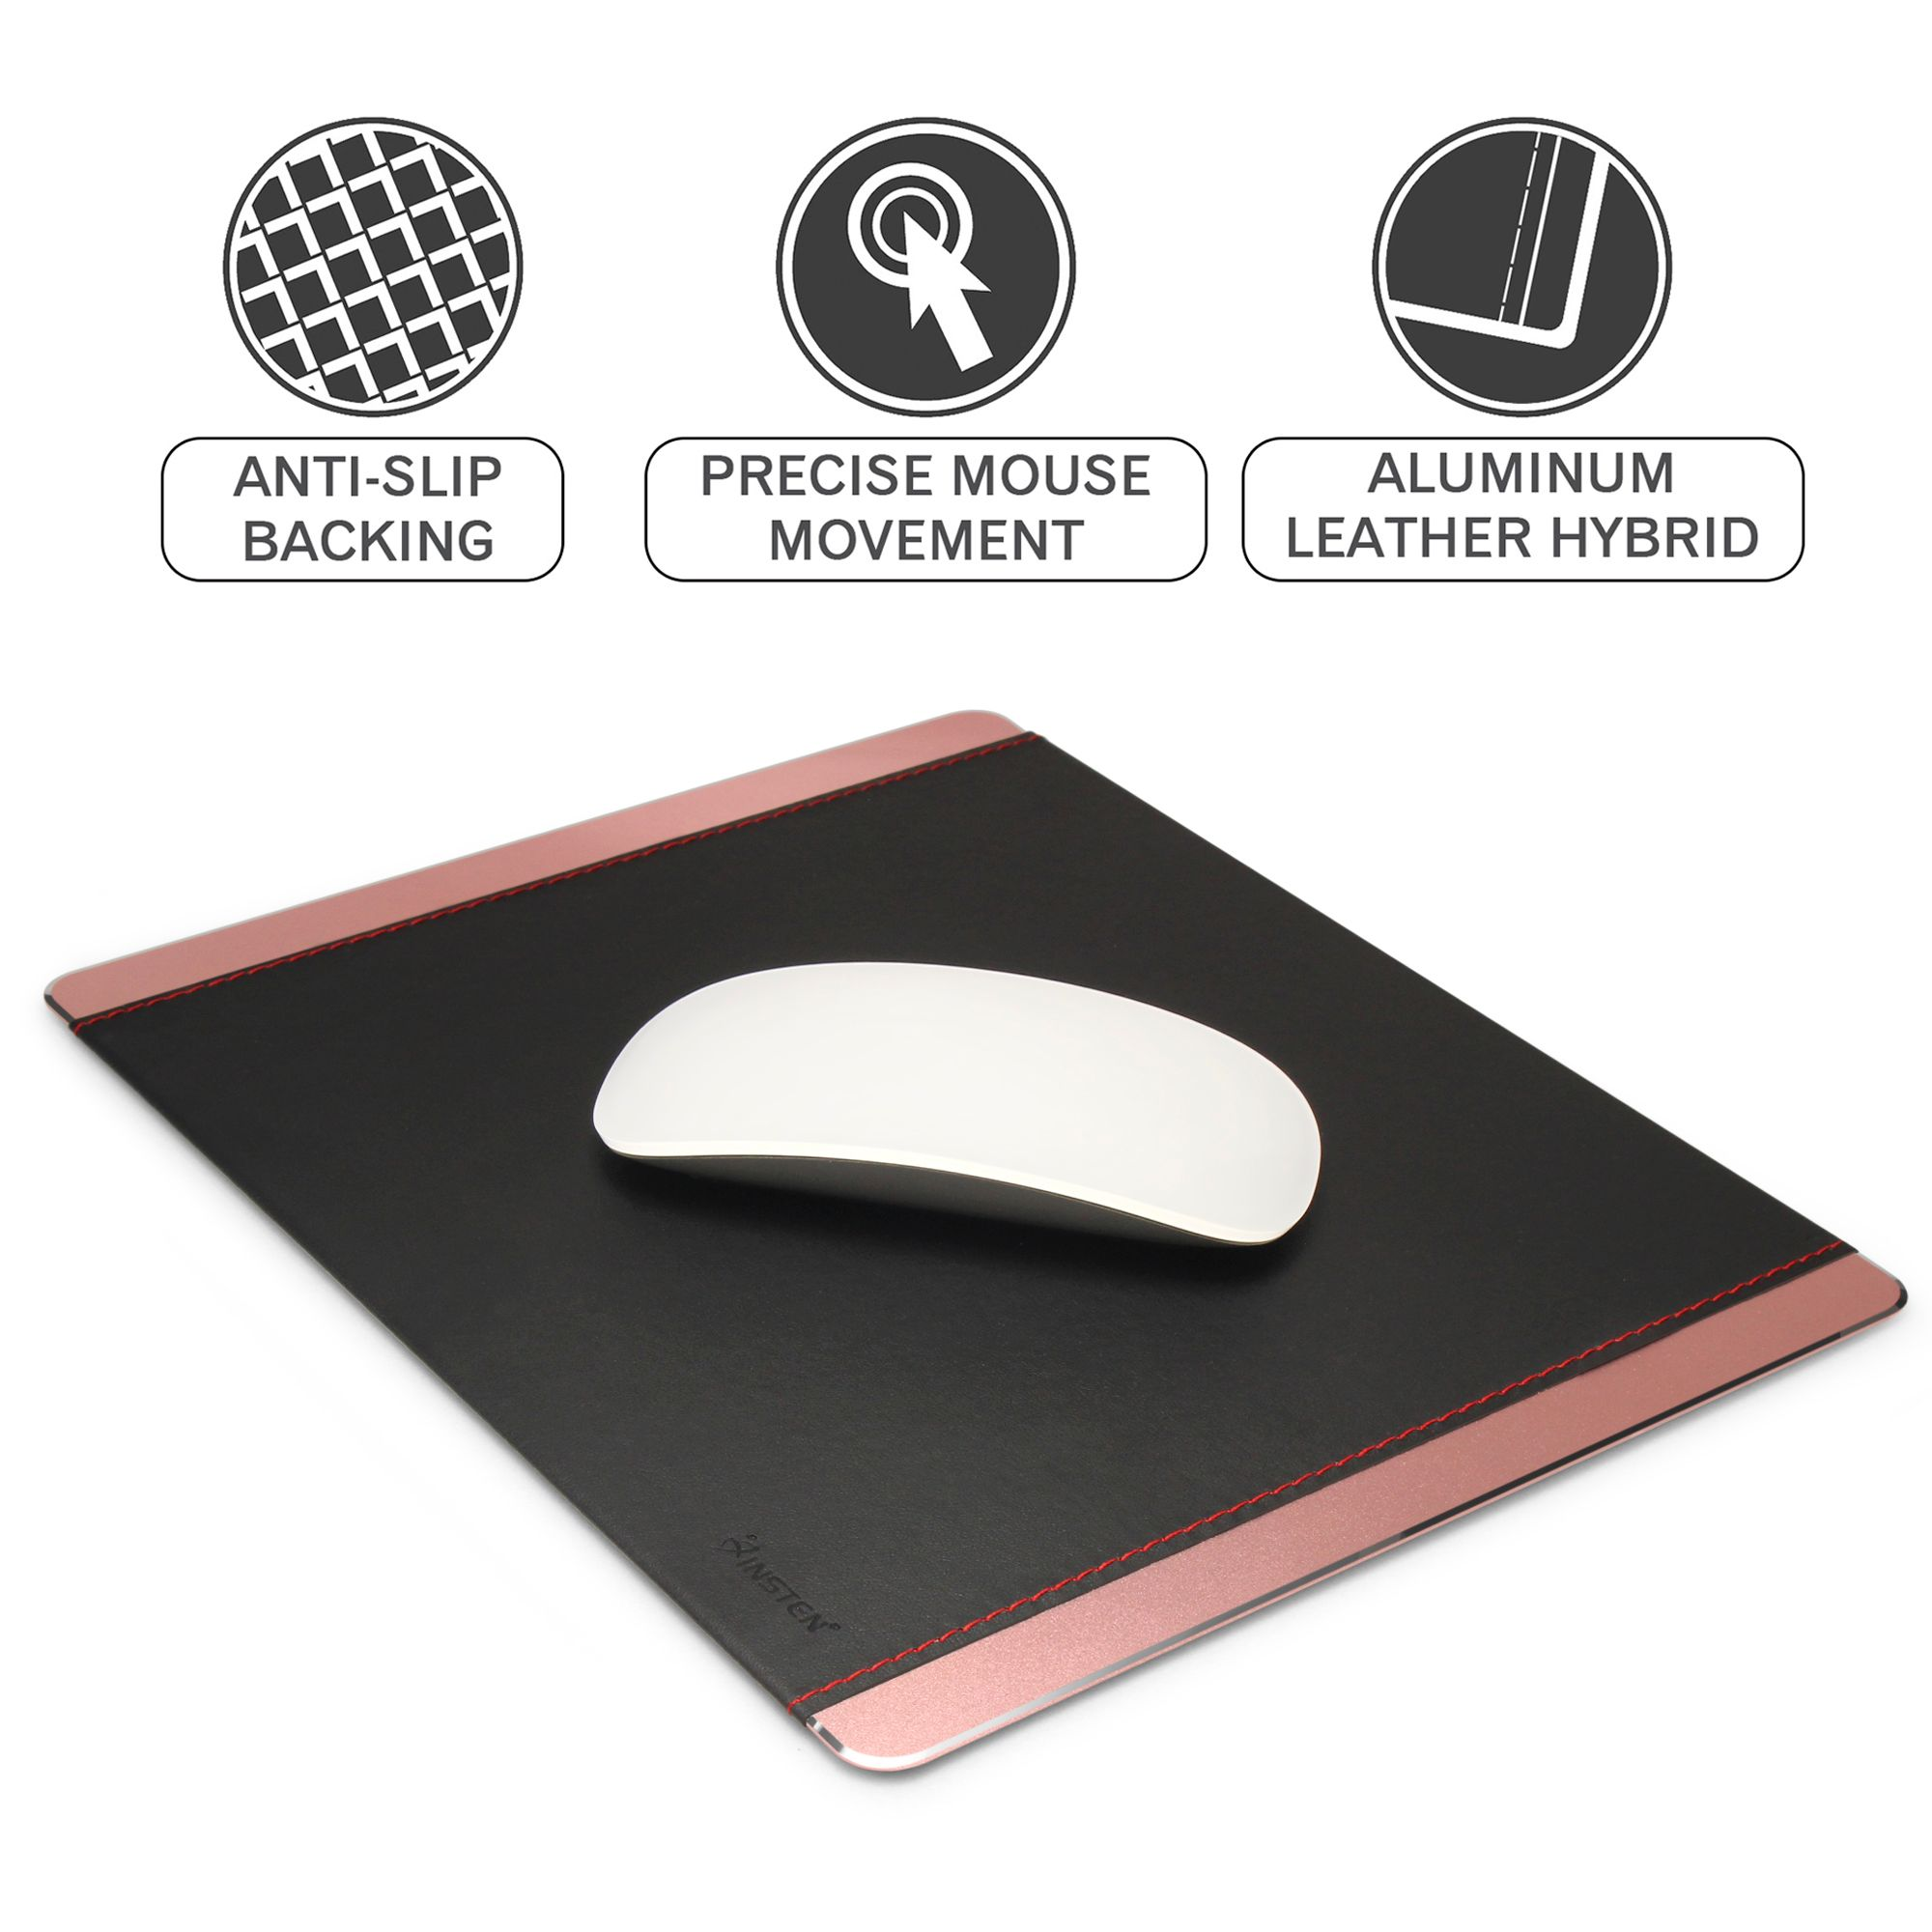 Insten Aluminum w/Leather Strong Durable Mouse Pad 3mm Thick Non-Slip Mice Mat (Size: 24 cm x 20cm) For Laptop PC Gaming - Rose Gold/Black